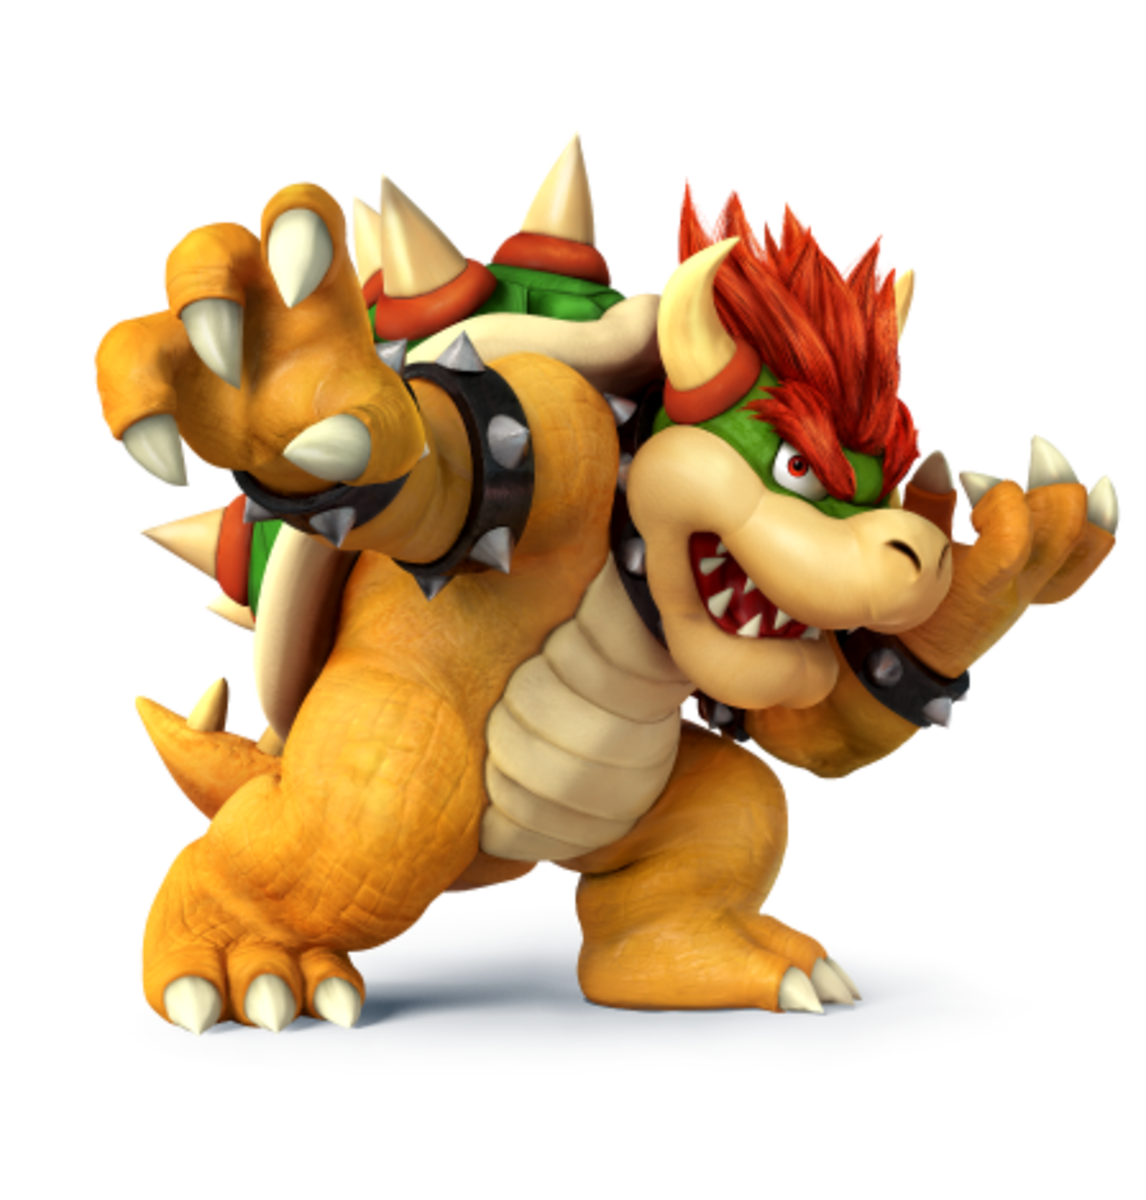 King of the Koopas